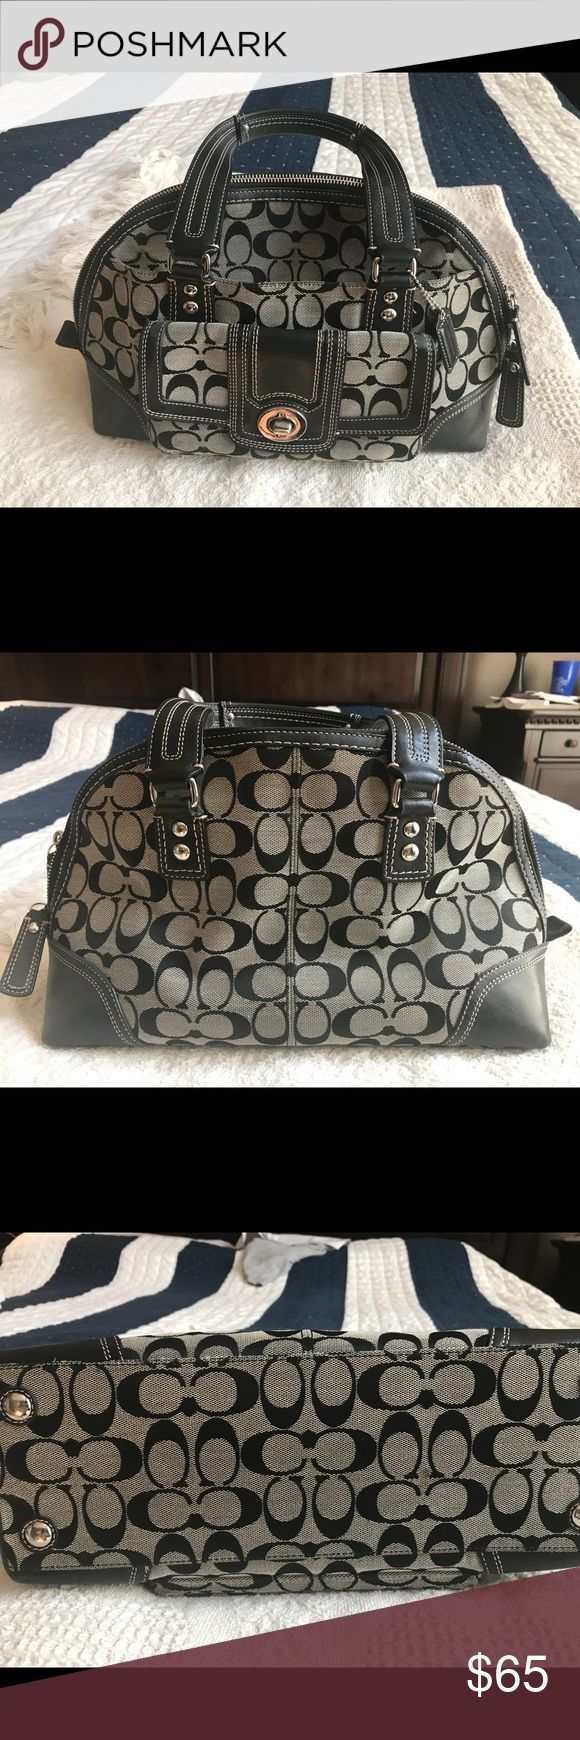 Authentic Signature Coach Purse Authentic Signature Coach Purse. In used but really good condition. There is a dime sized spot on the very bottom of the Purse as shown in photos. Handles are in good shape. No cracking. Inside is a little dusty from use but would easily wipe out. Color is black and gray. Coach Bags Shoulder Bags